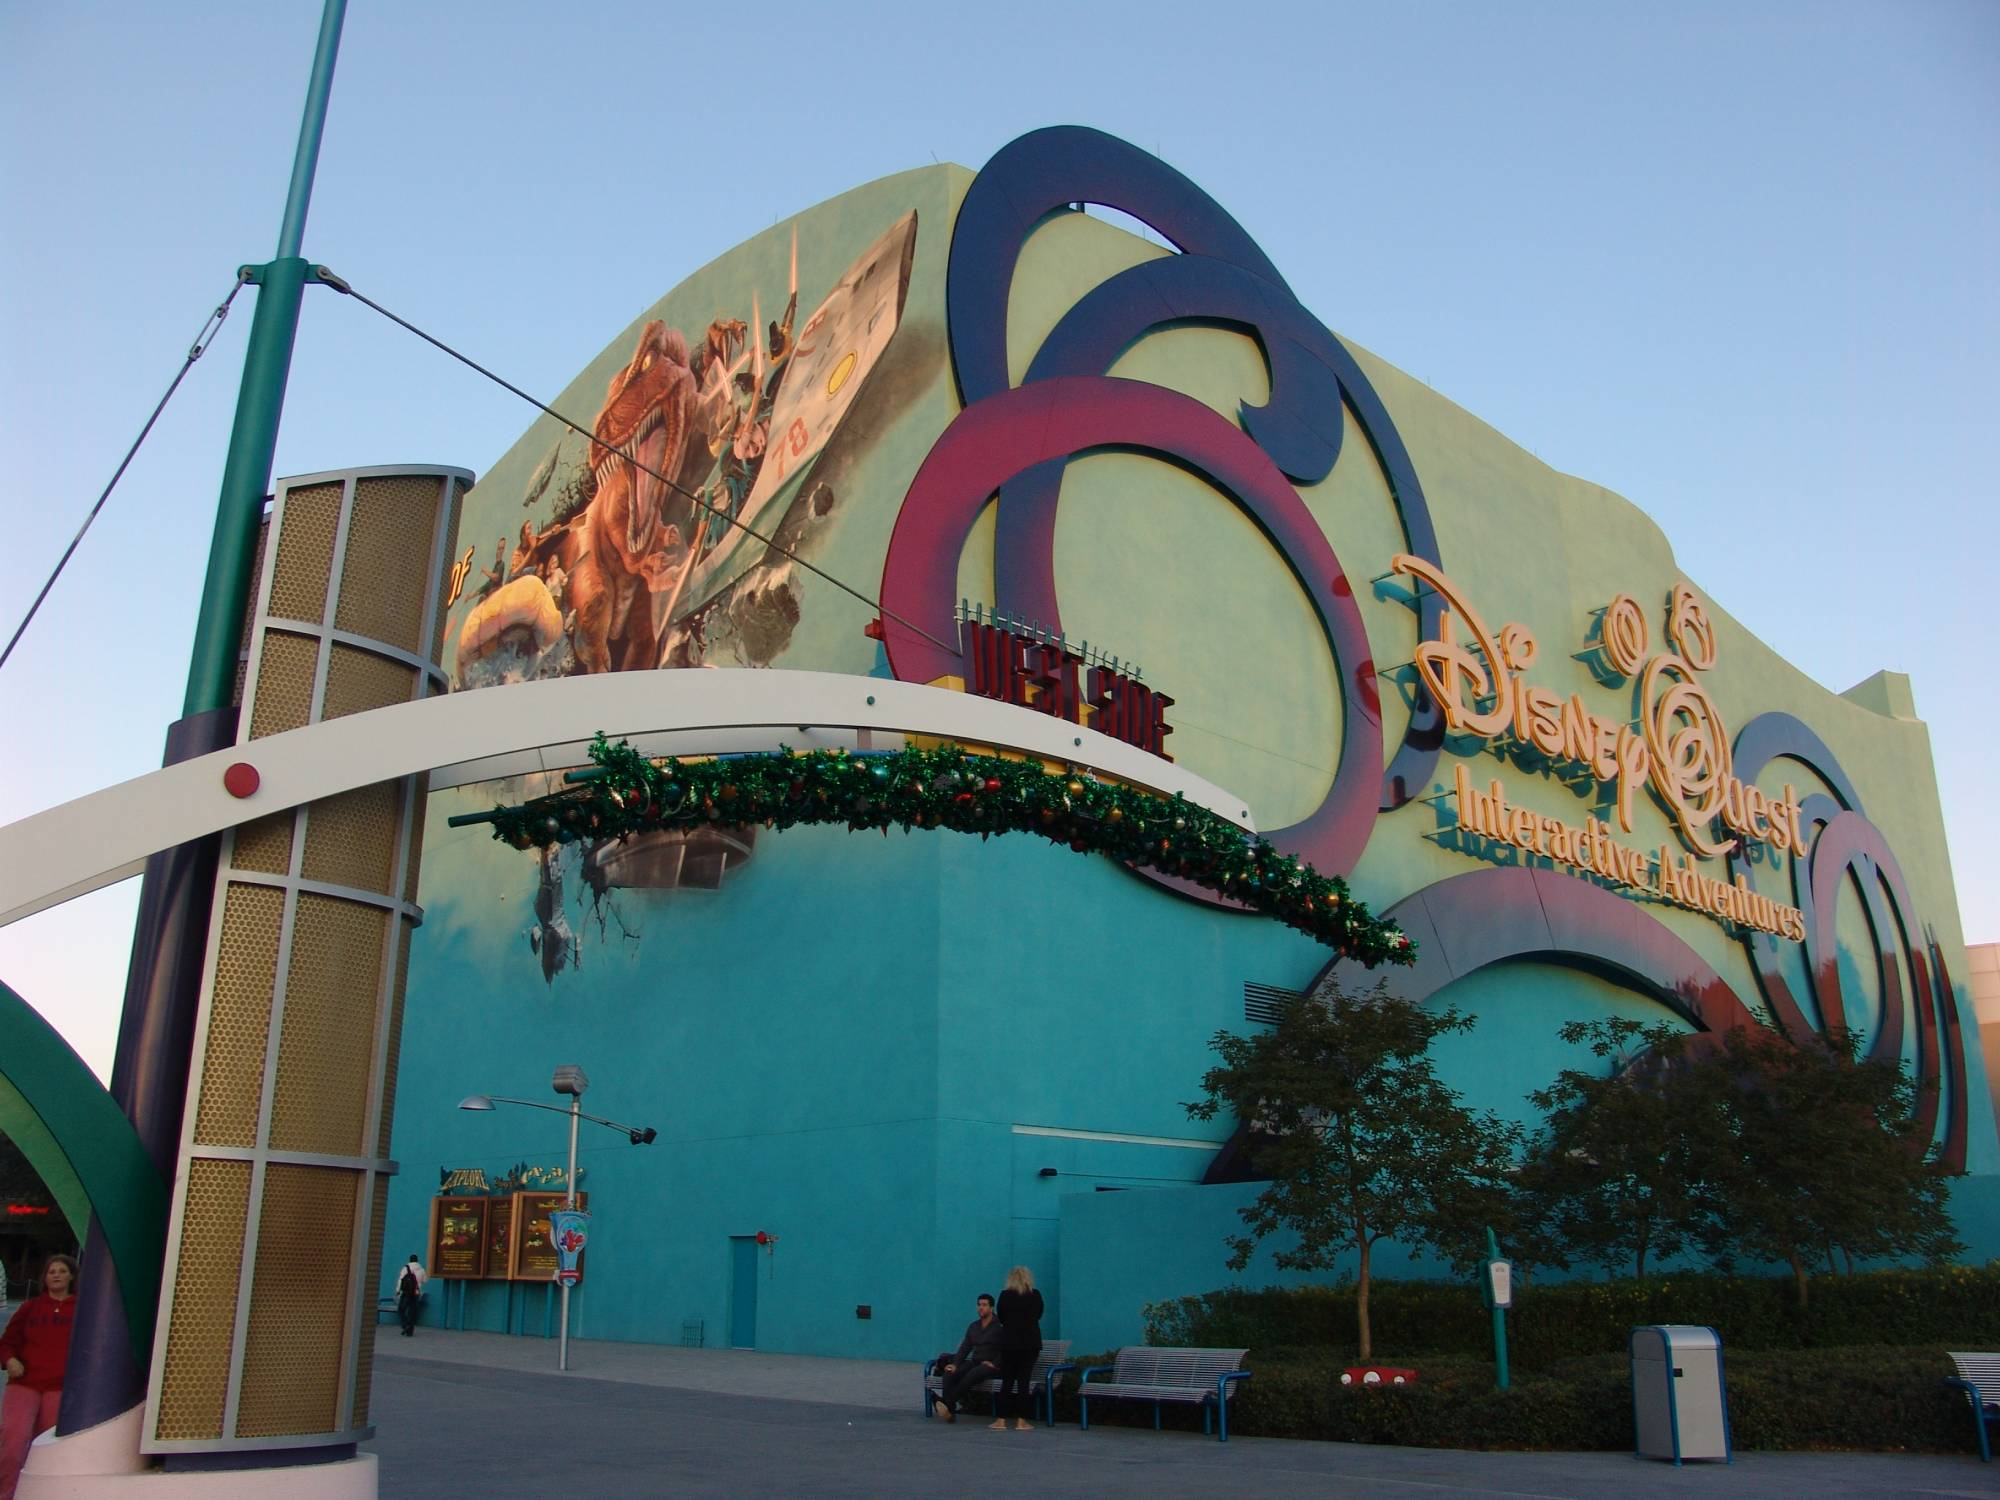 Downtown Disney - DisneyQuest